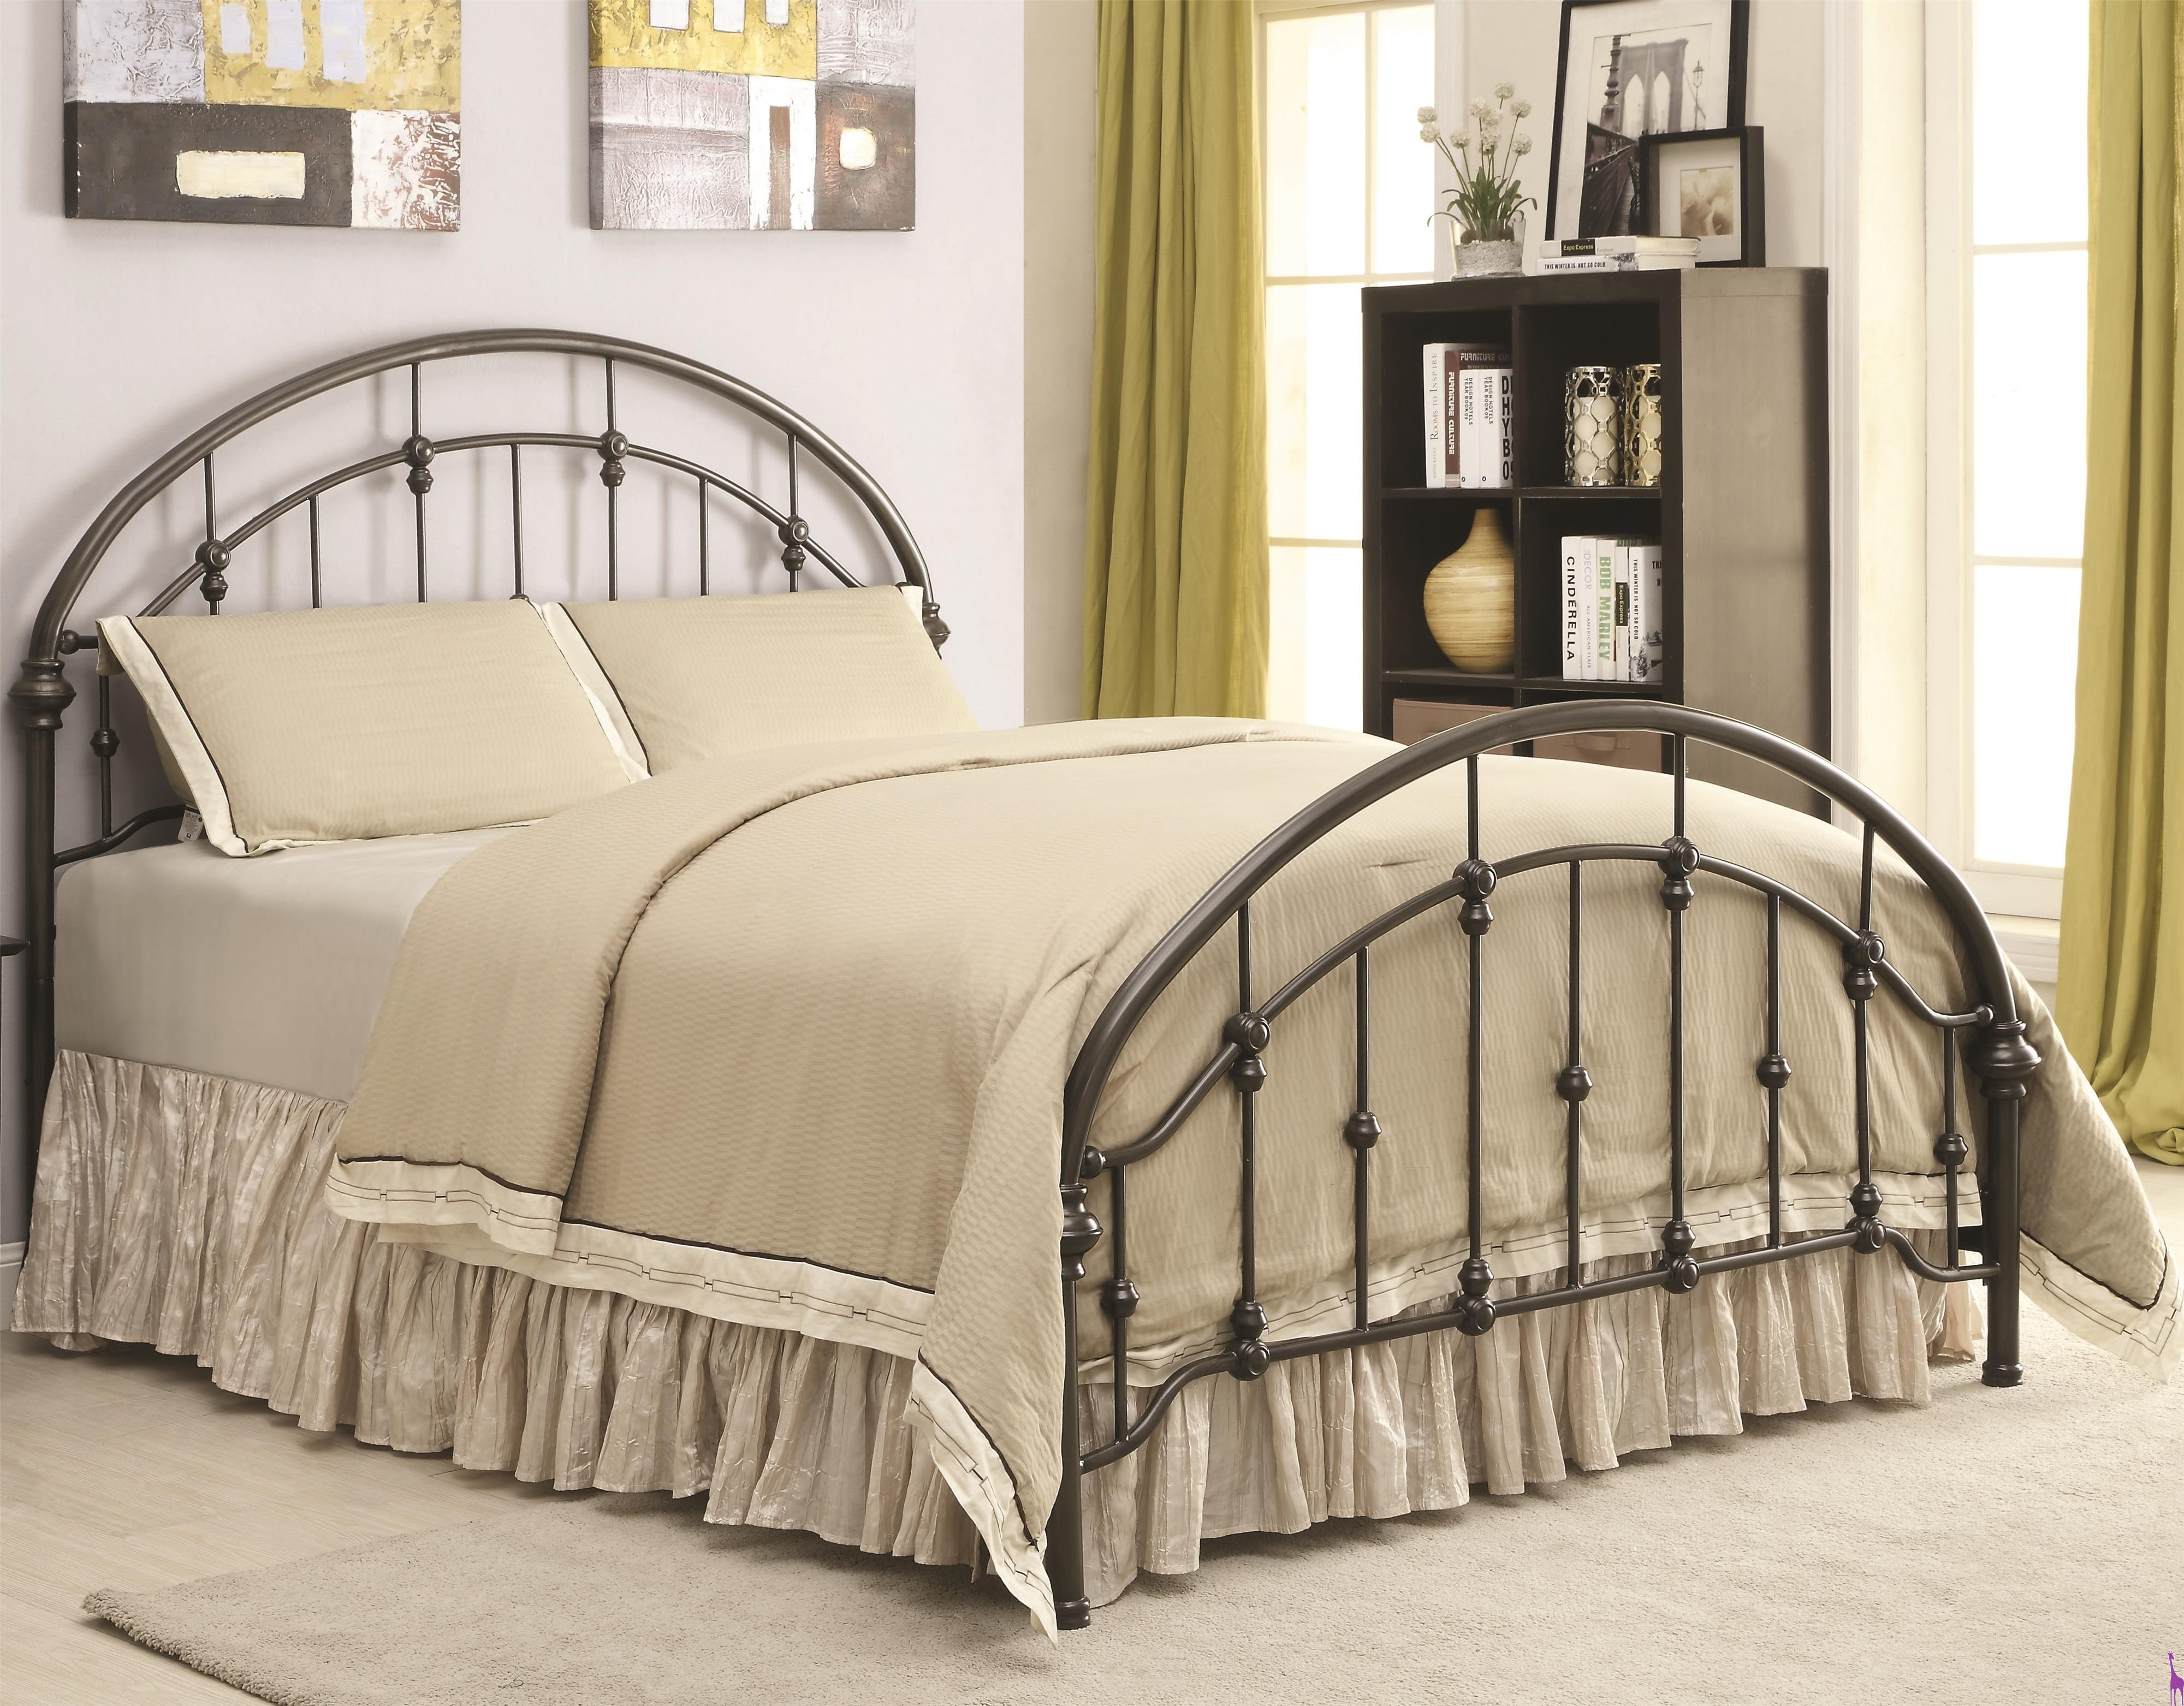 Best Iron Beds And Headboards Metal Curved Bed Coaster 300407 With Pictures